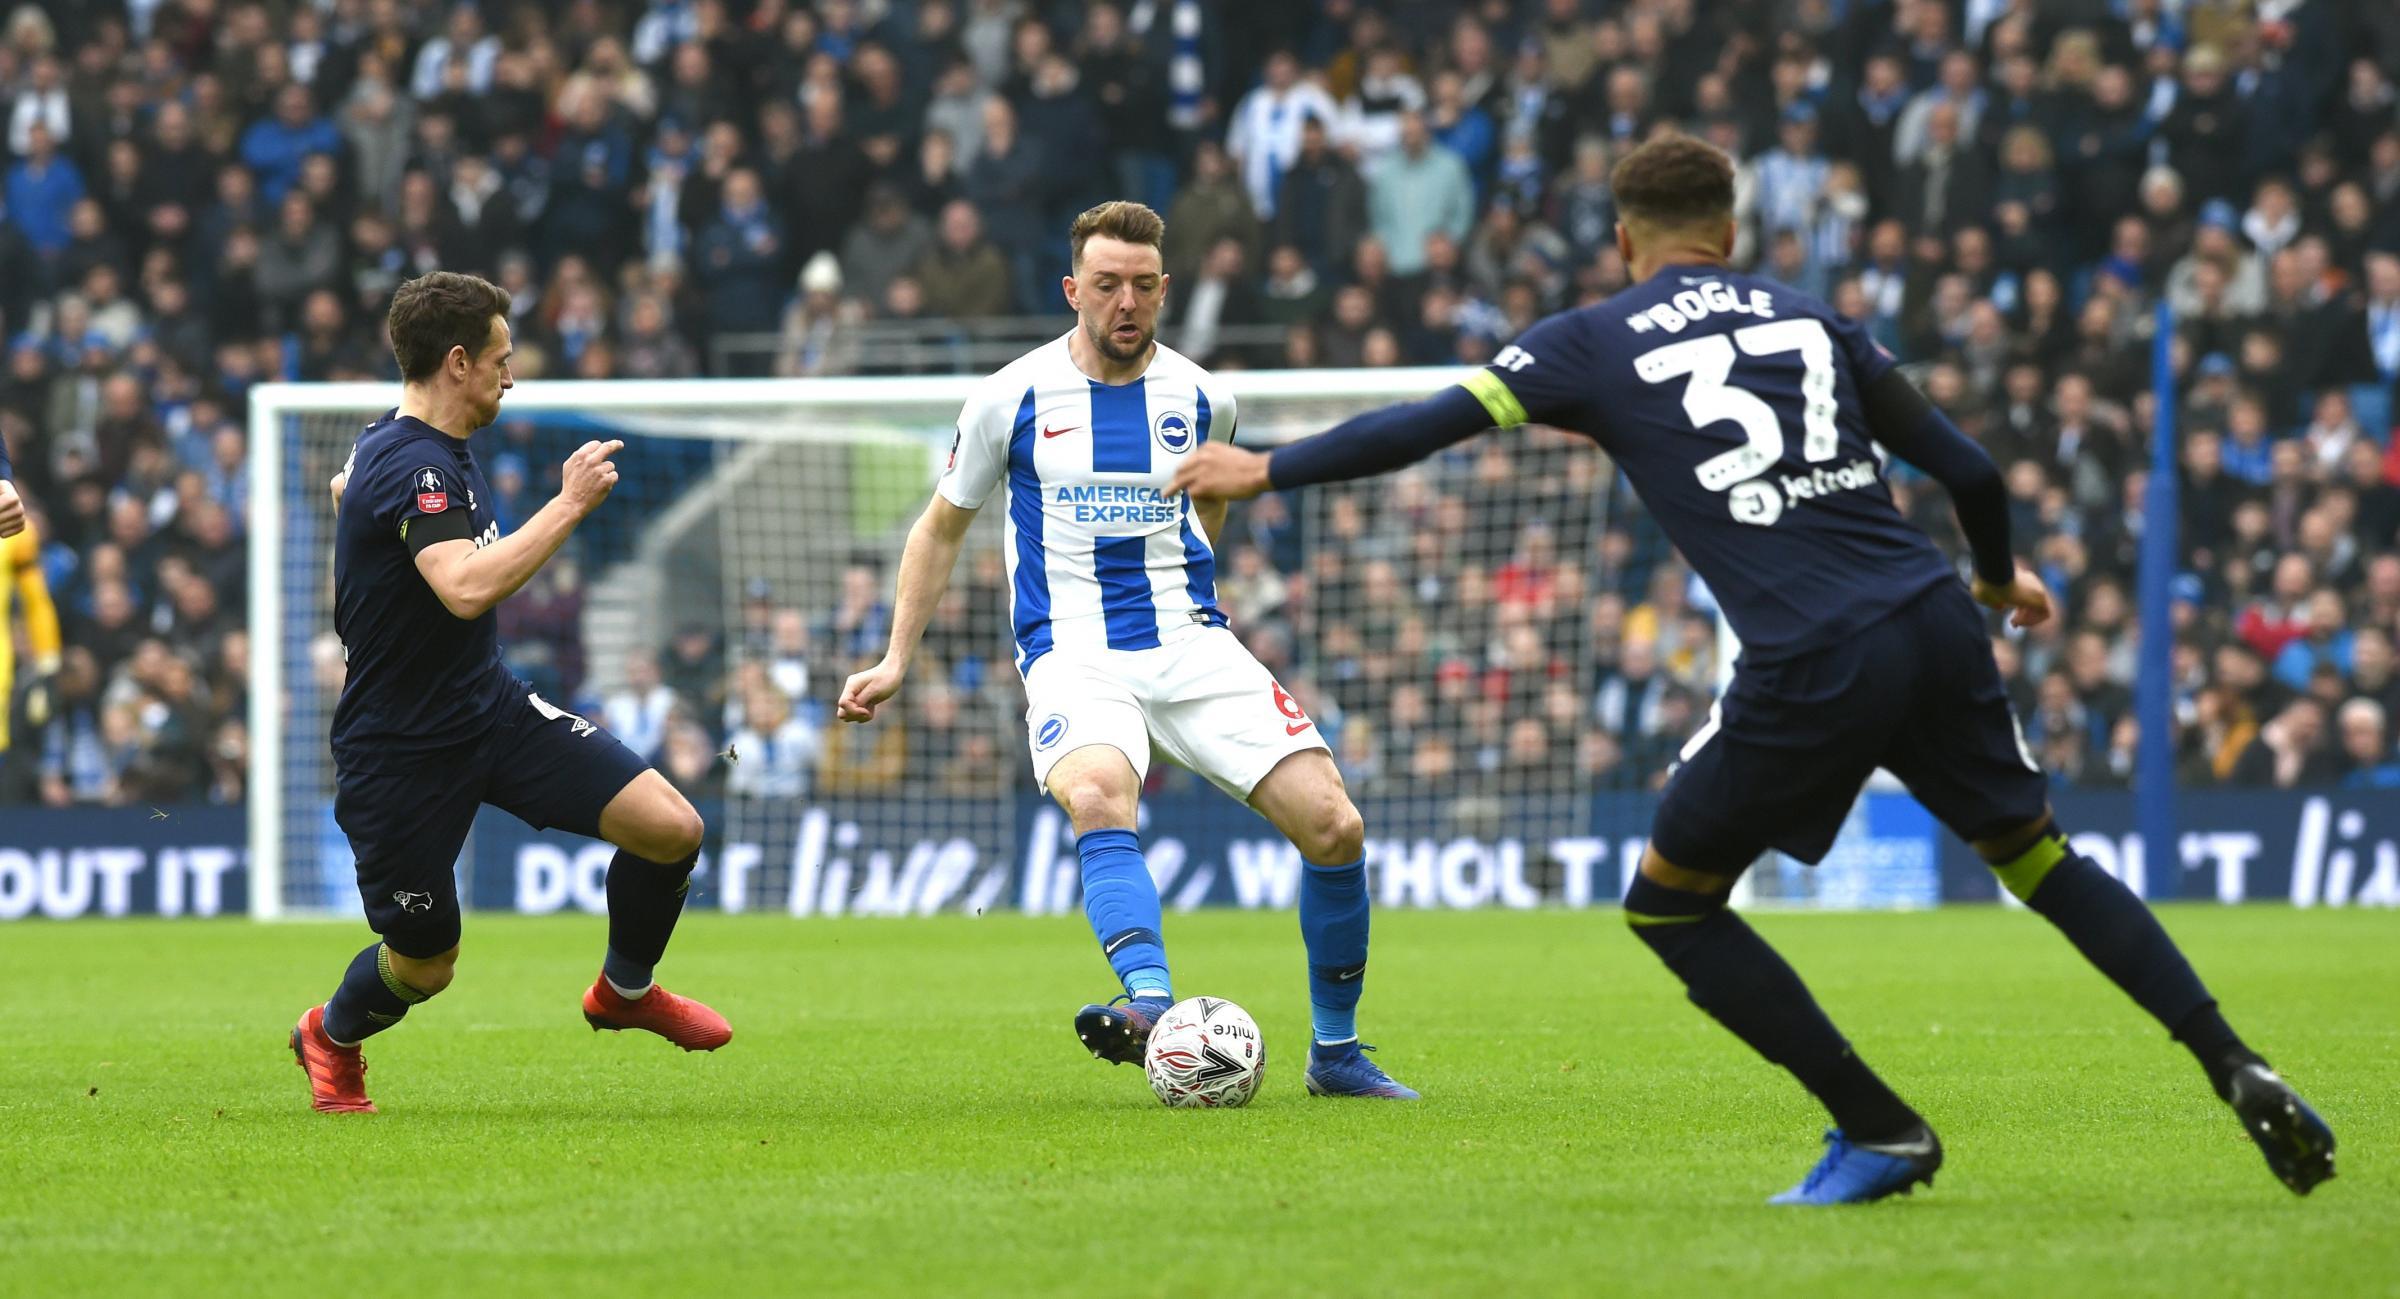 Stephens happy to keep calm and carry on for Albion